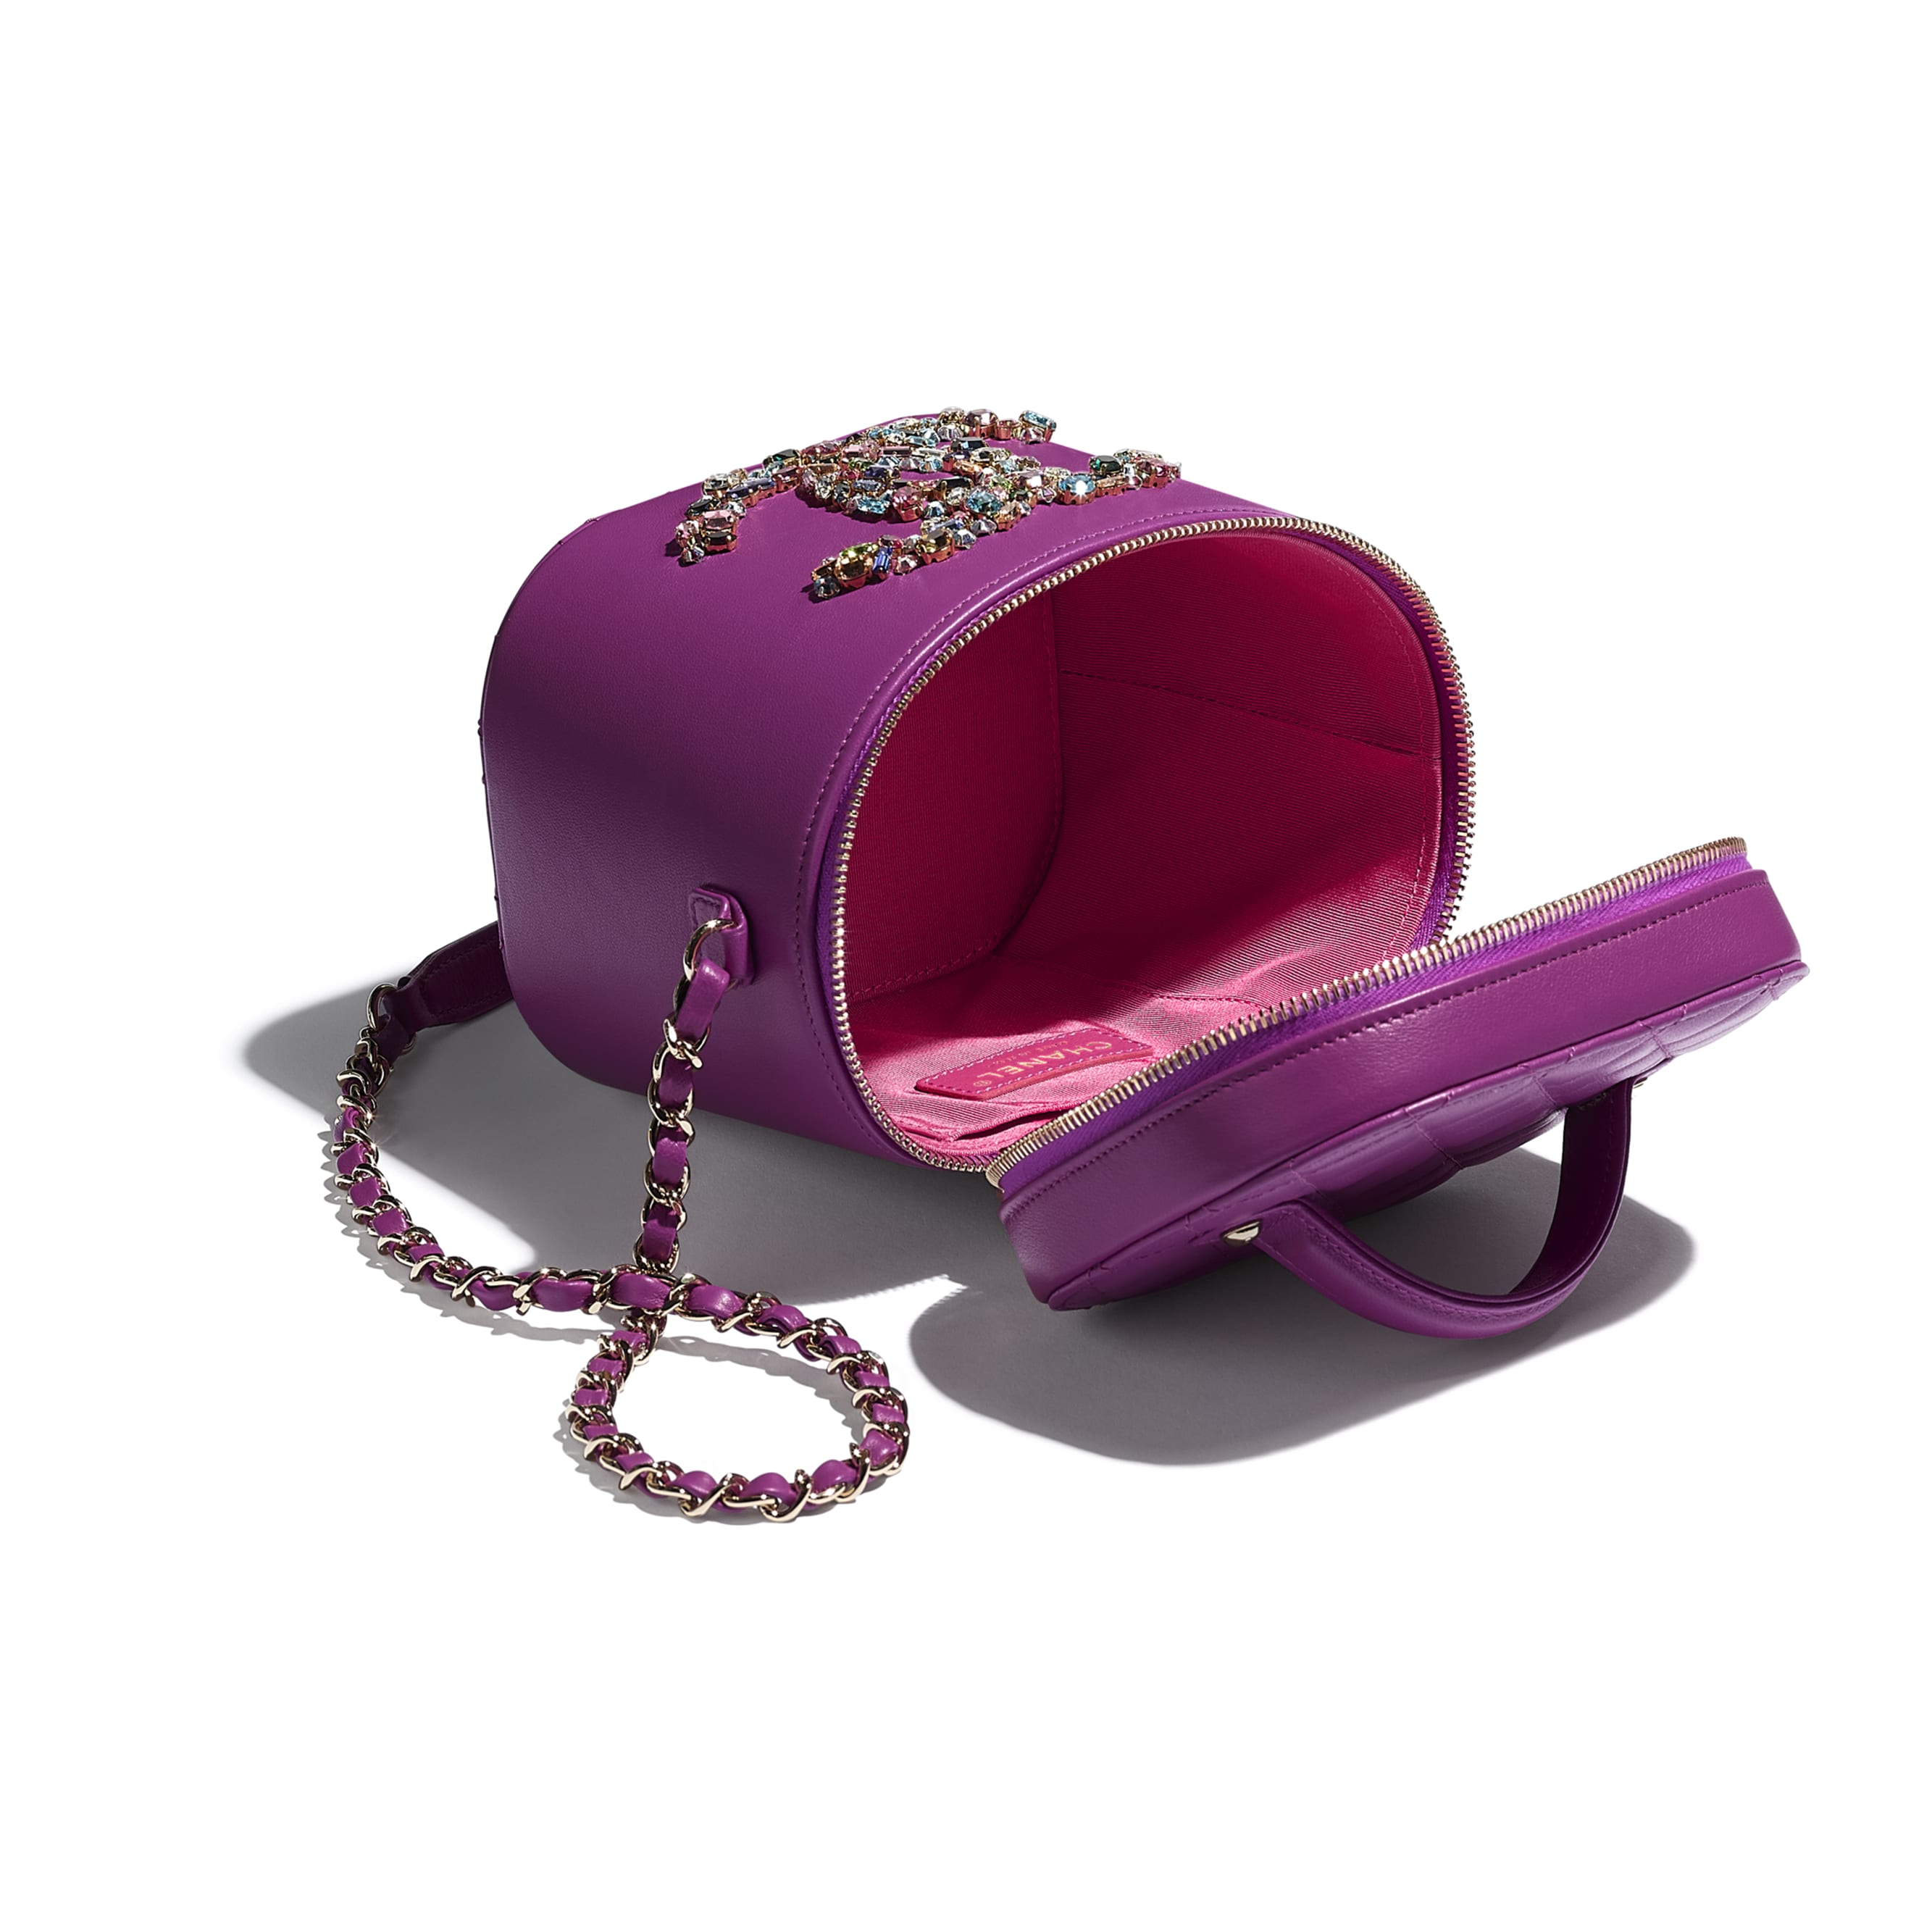 Vanity Case - Purple - Lambskin, Crystal, Calfskin & Gold-Tone Metal - CHANEL - Other view - see standard sized version